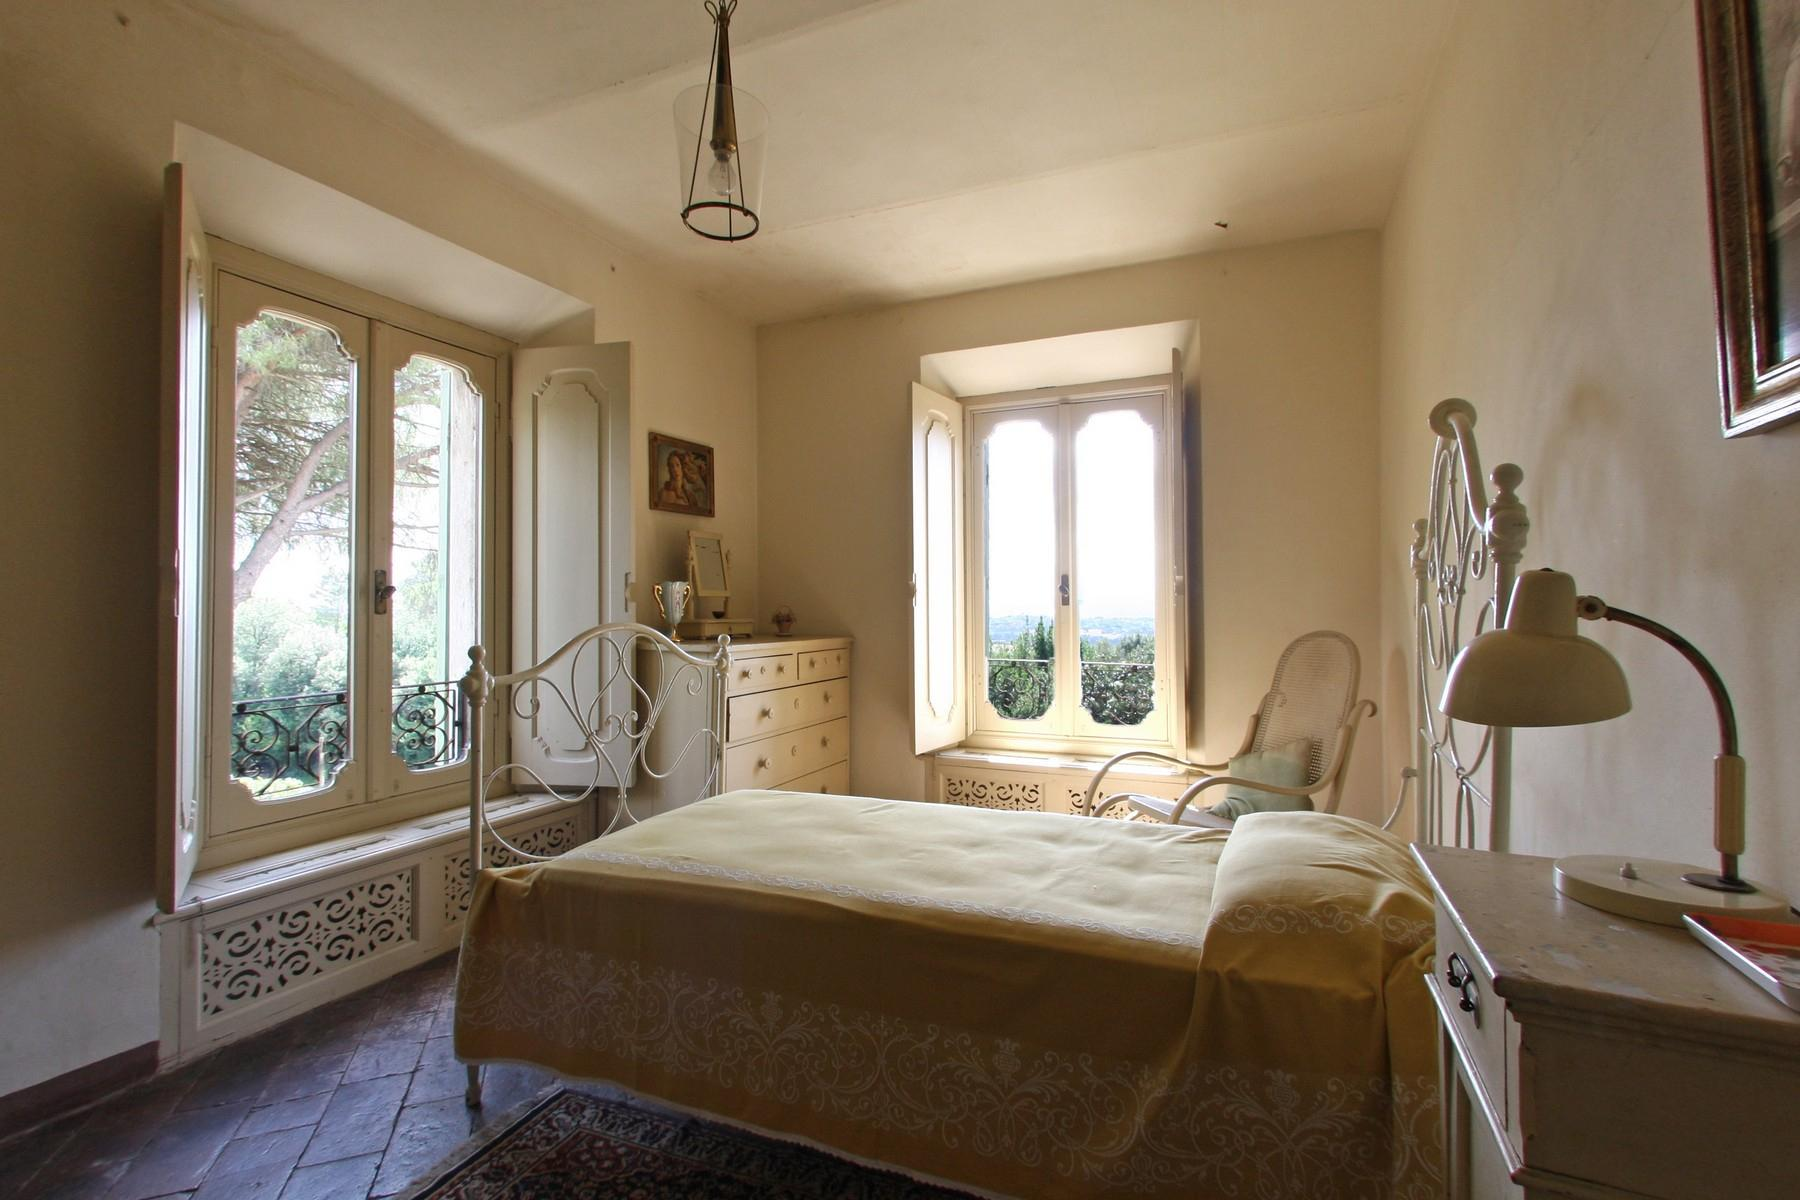 Magnificent historical villa with typical italian garden in Umbria - 37